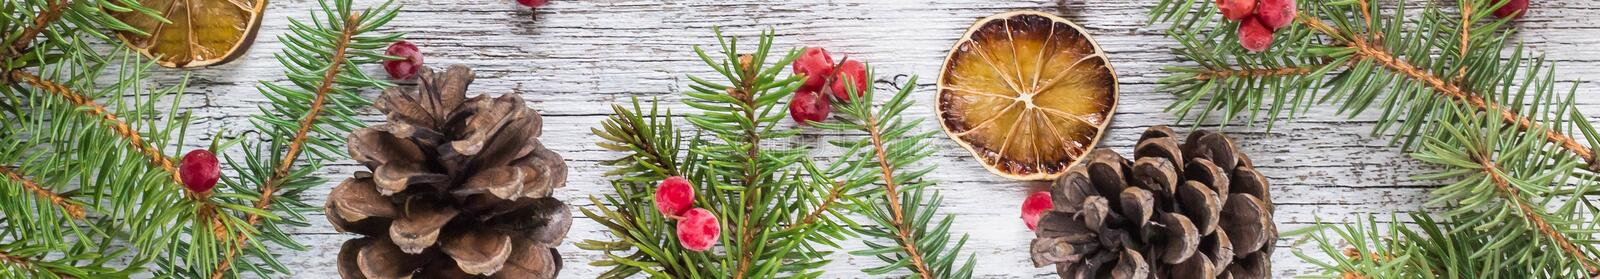 banner of Christmas branches with cones viburnum berries and dry lemon slice stock image